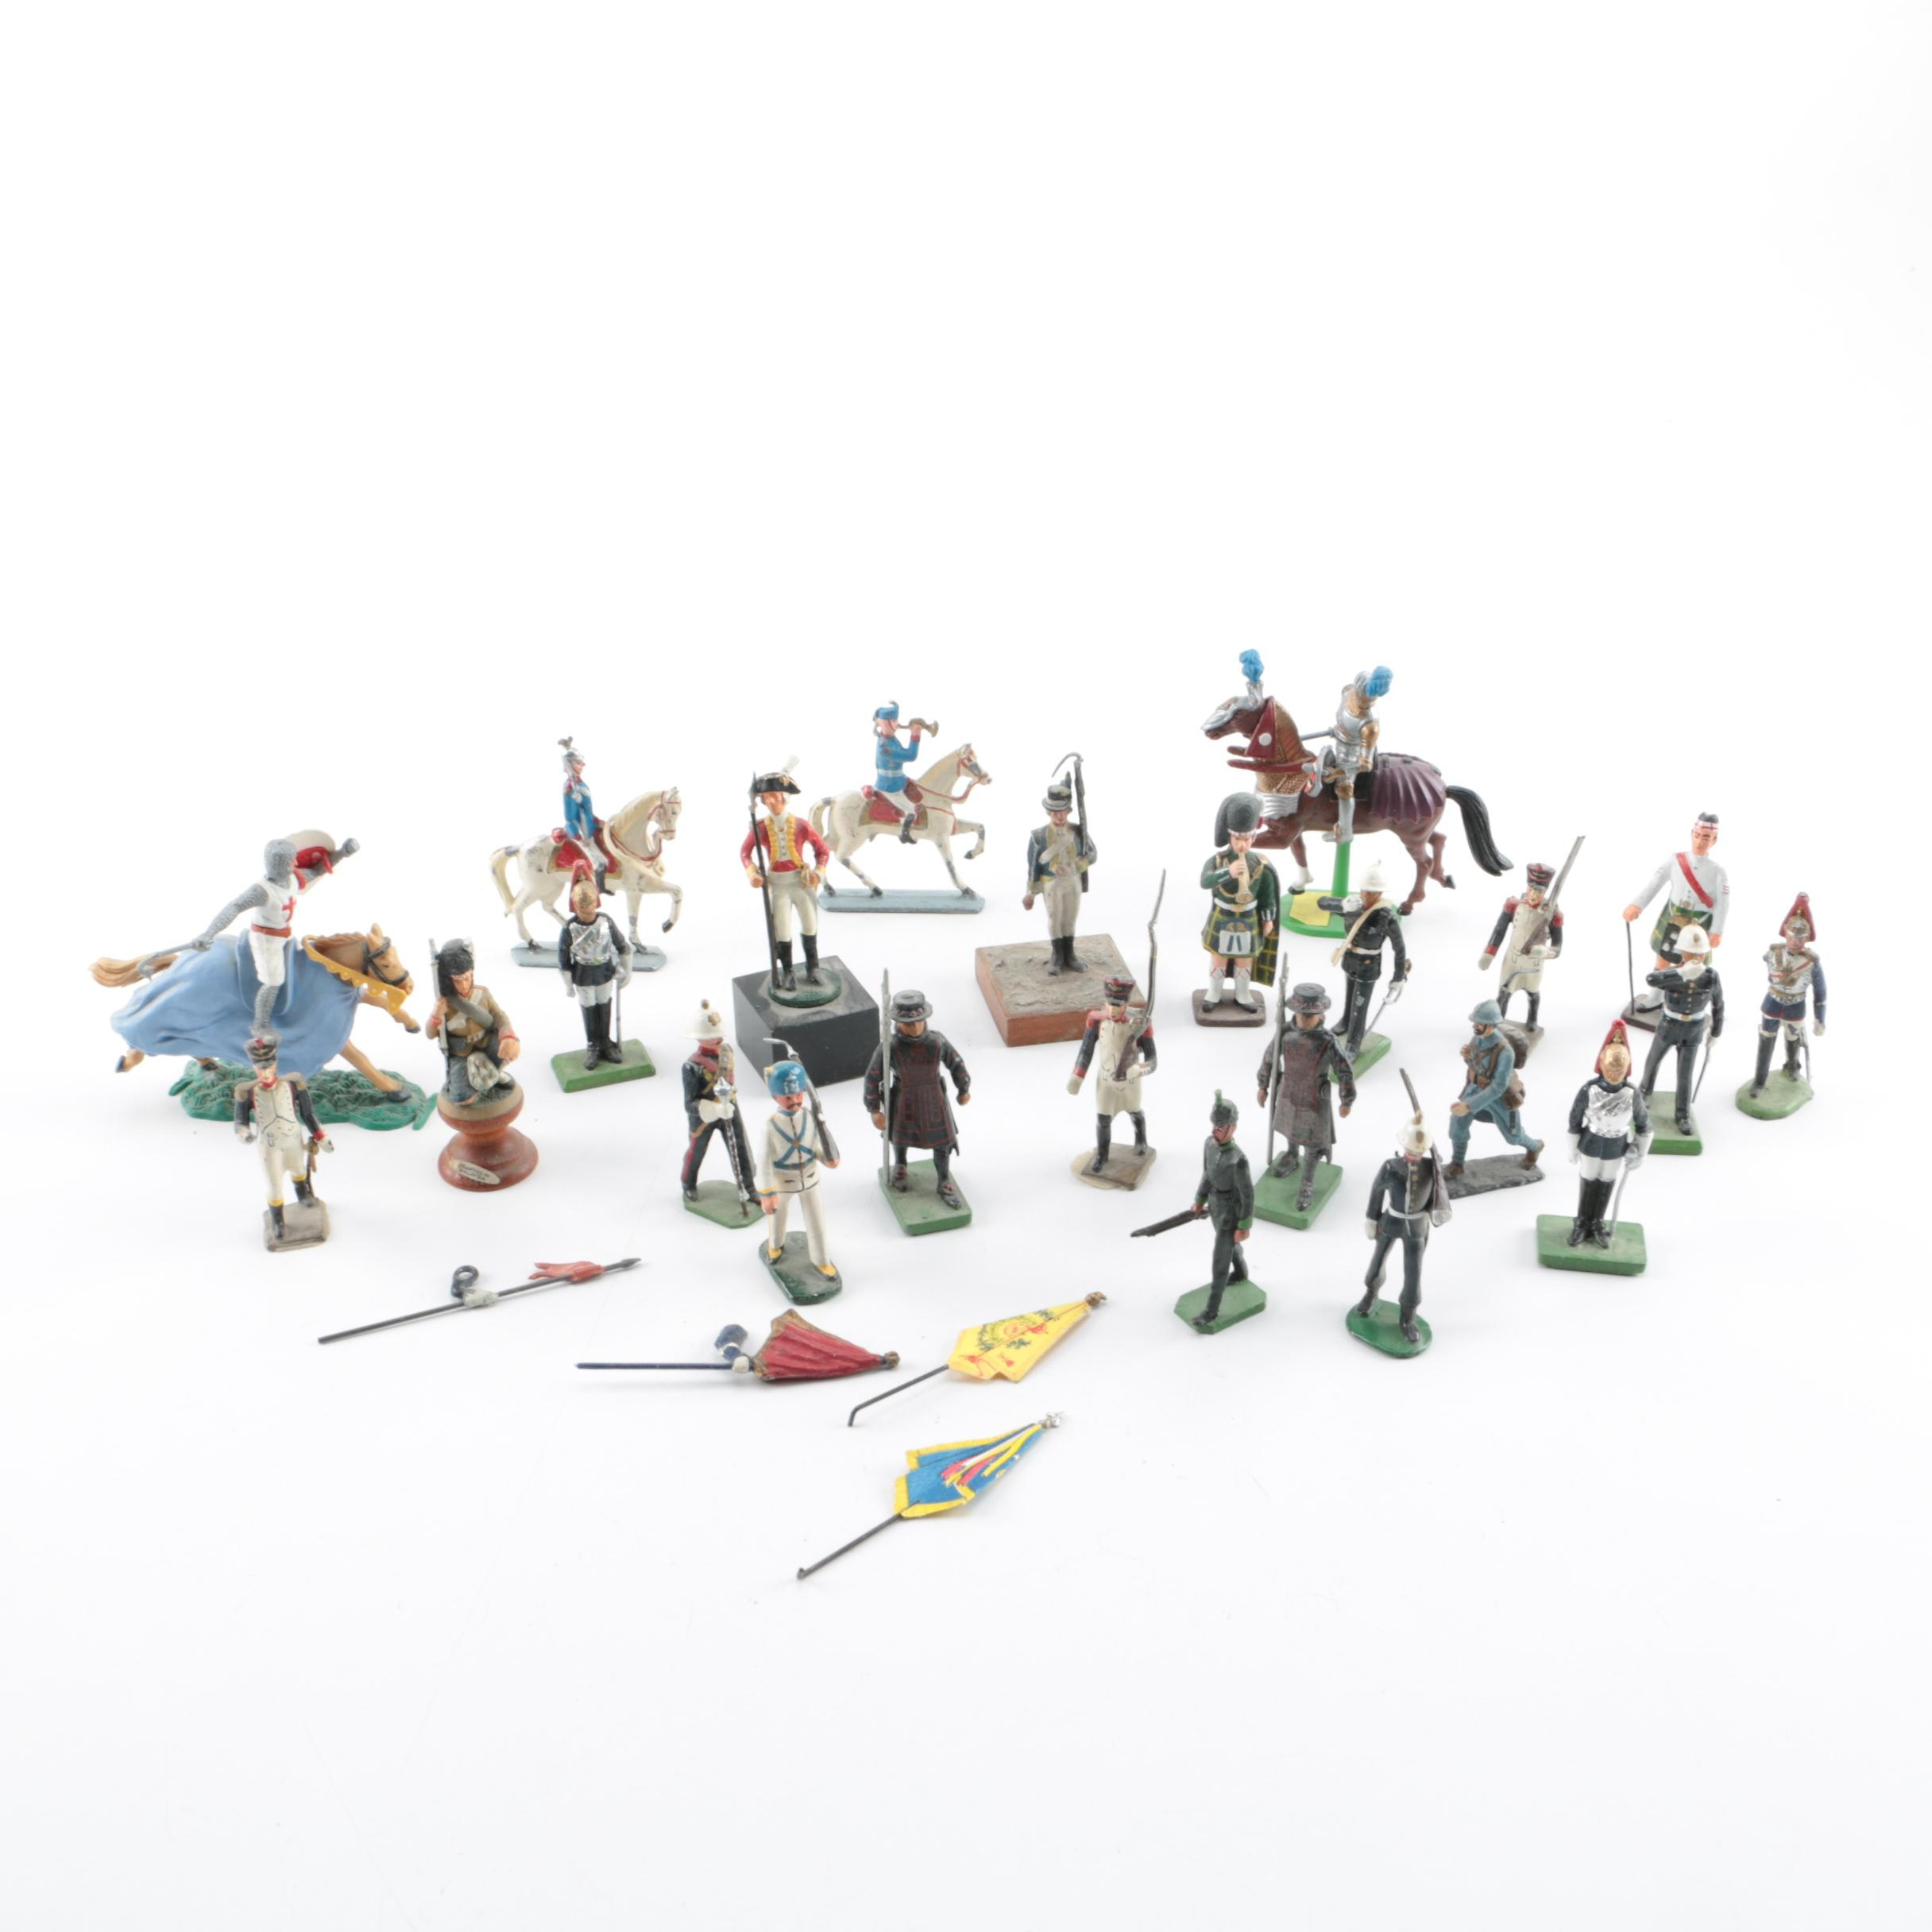 Assorted Metal and Plastic Toy Soldiers